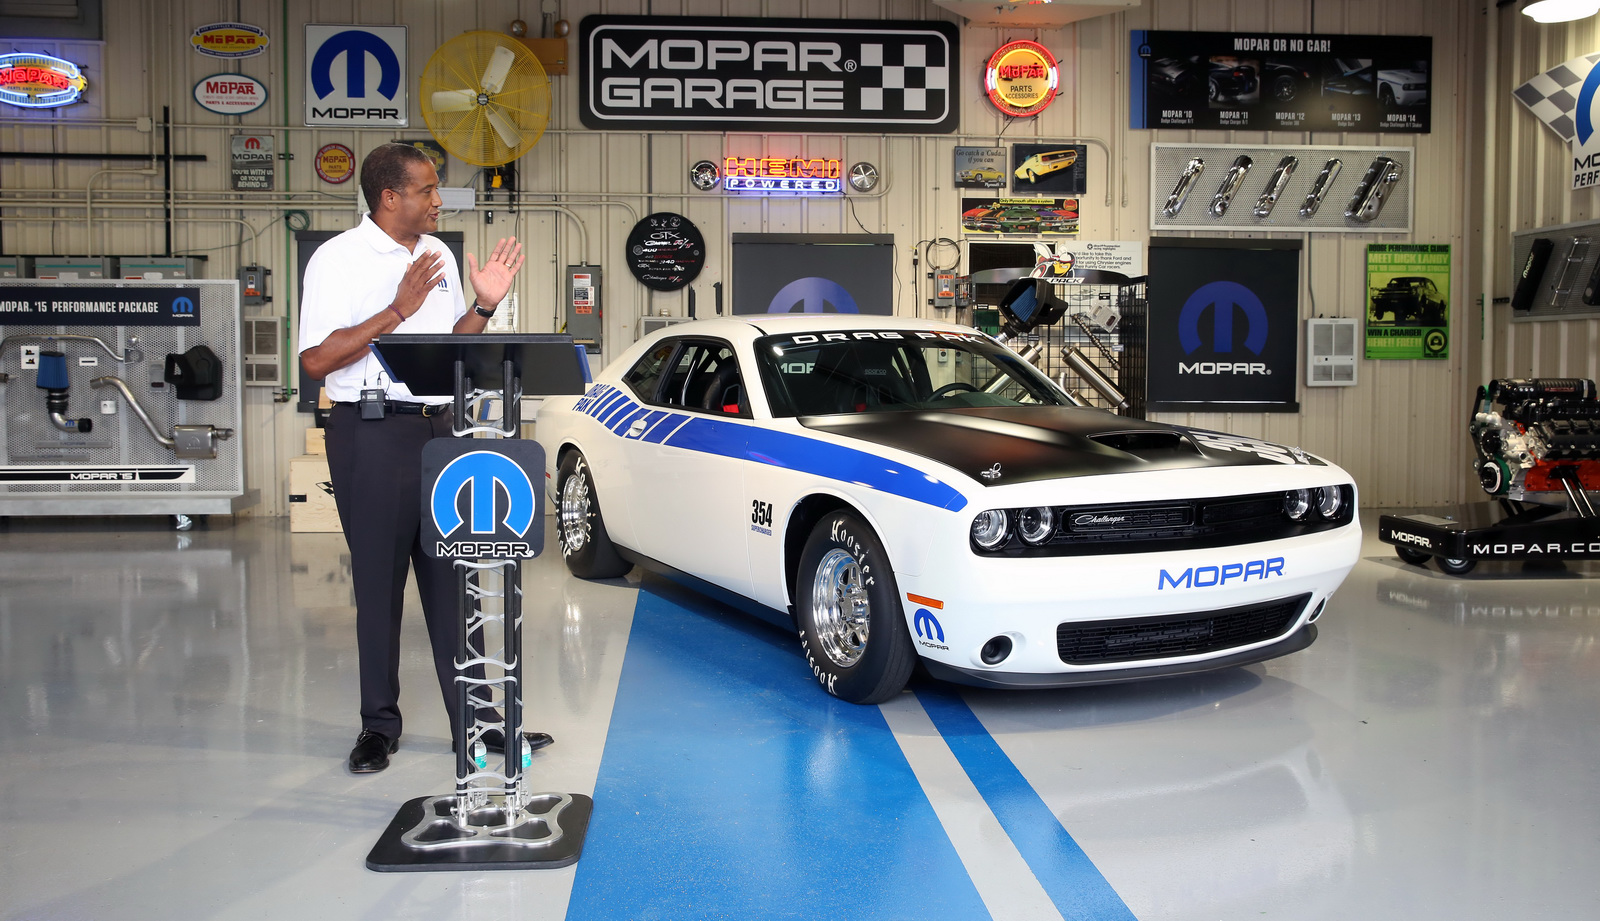 All 60 2016 Mopar Challenger Drag Paks Are Spoken For | Mopar ...